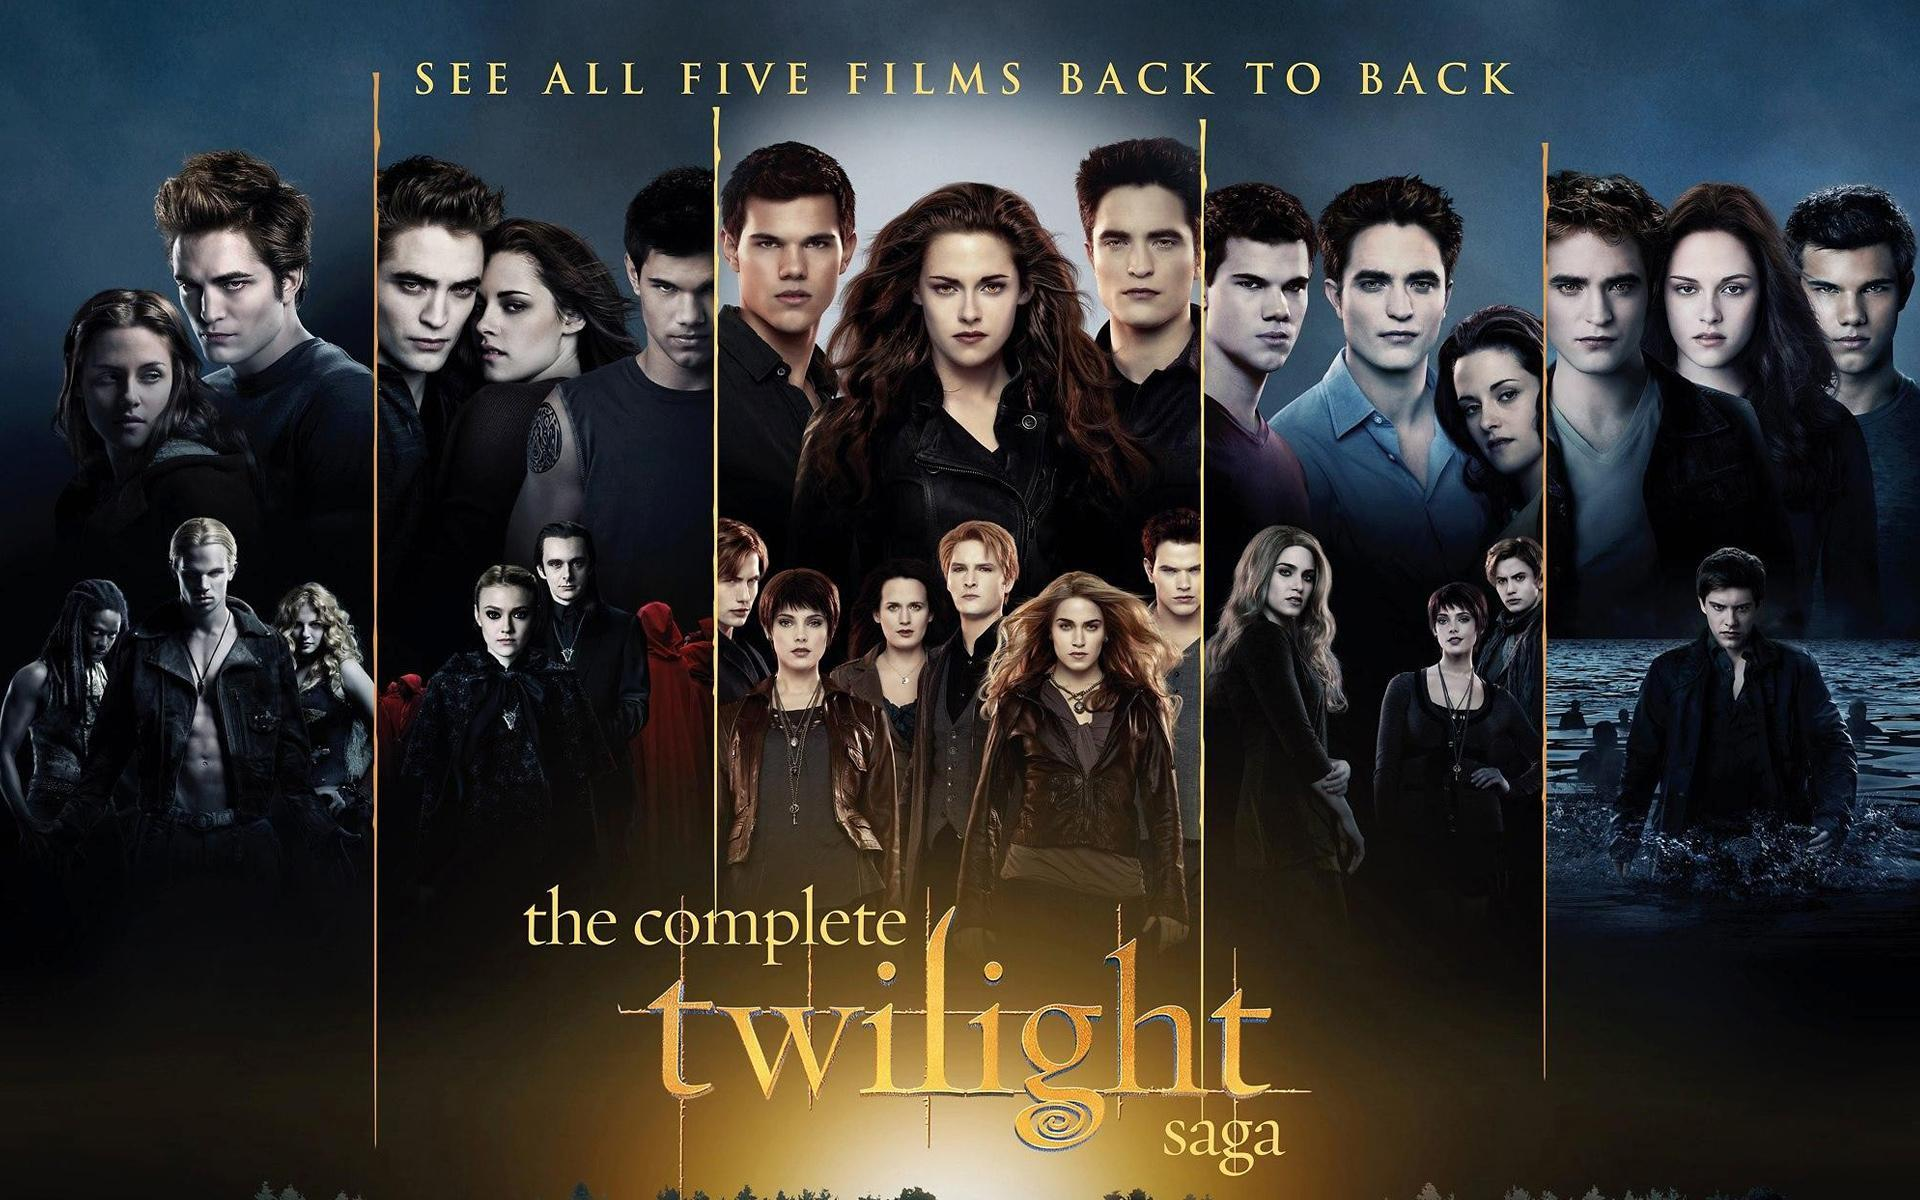 How Well Do You Know the Twilight Movies?